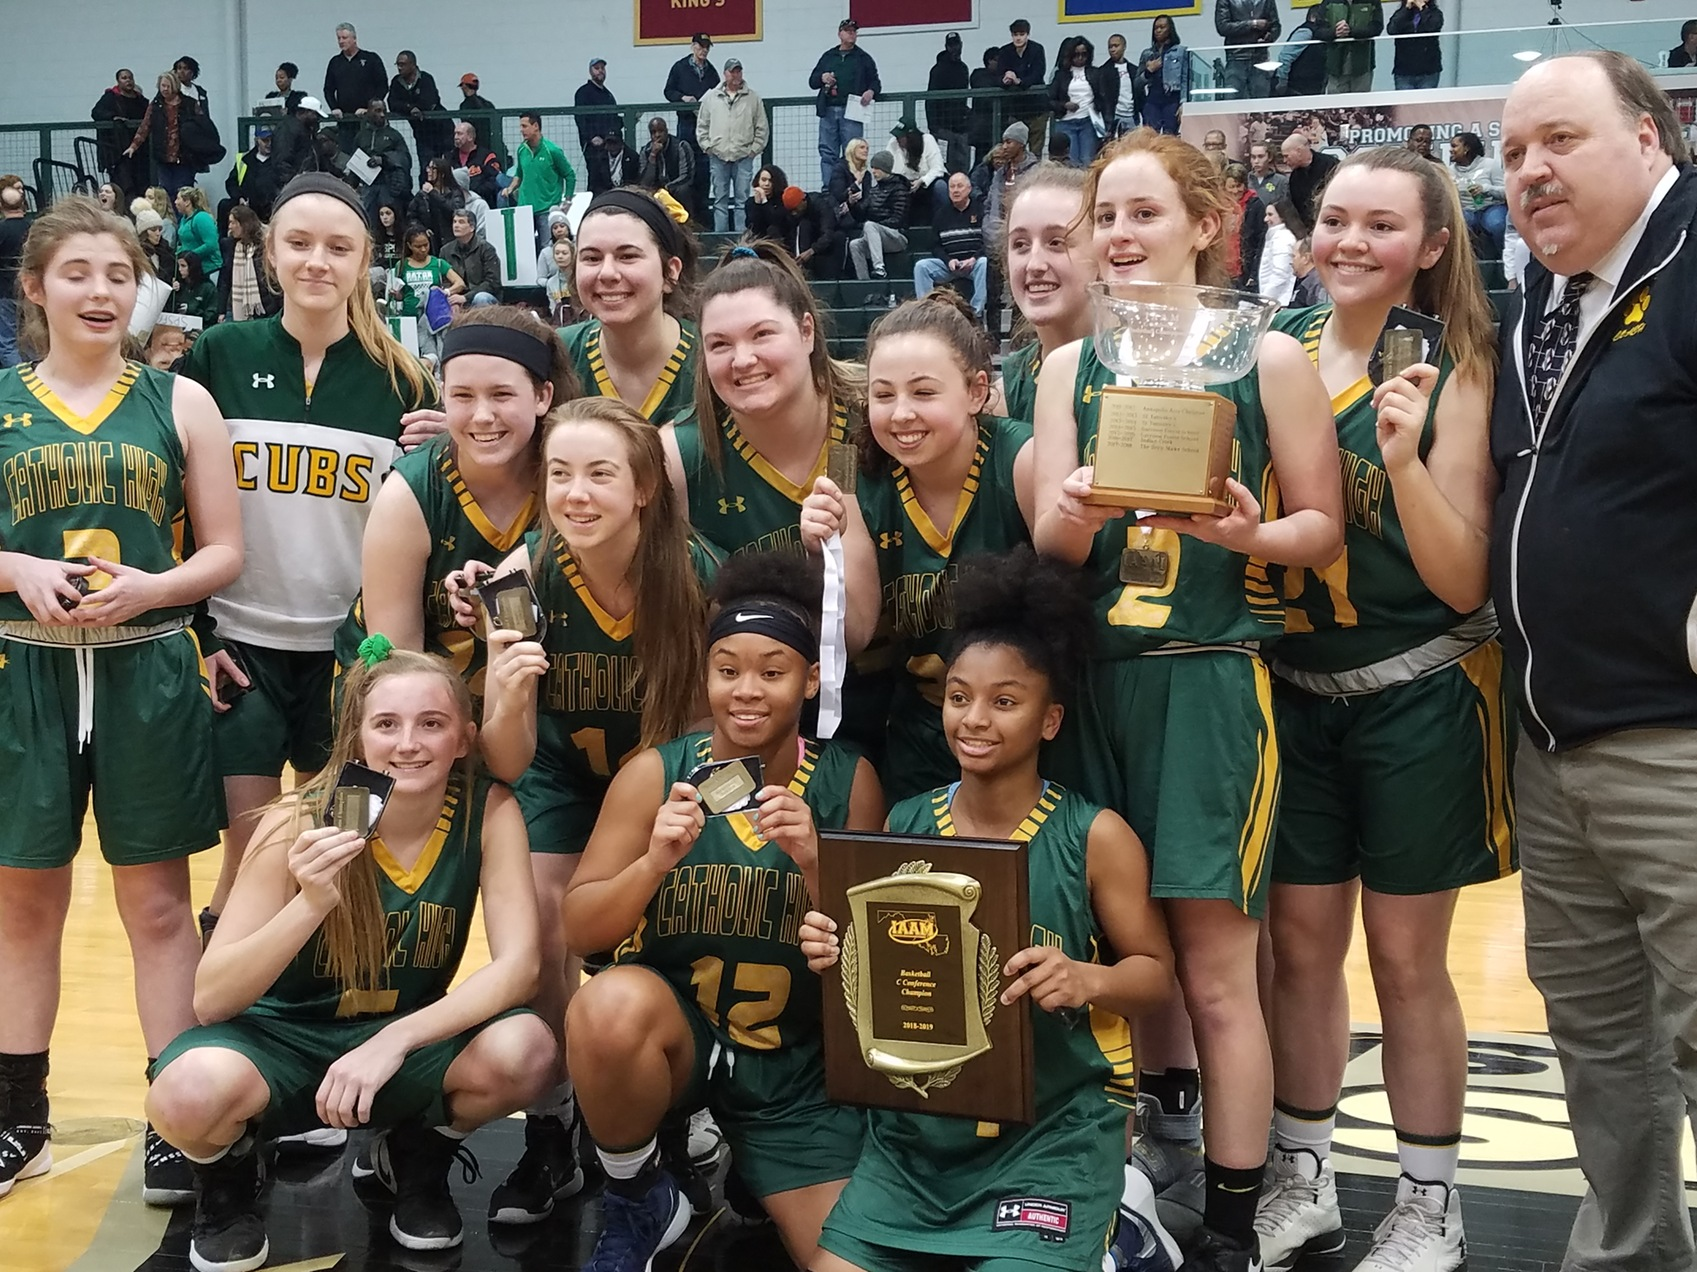 Catholic hoists C Conference basketball trophies